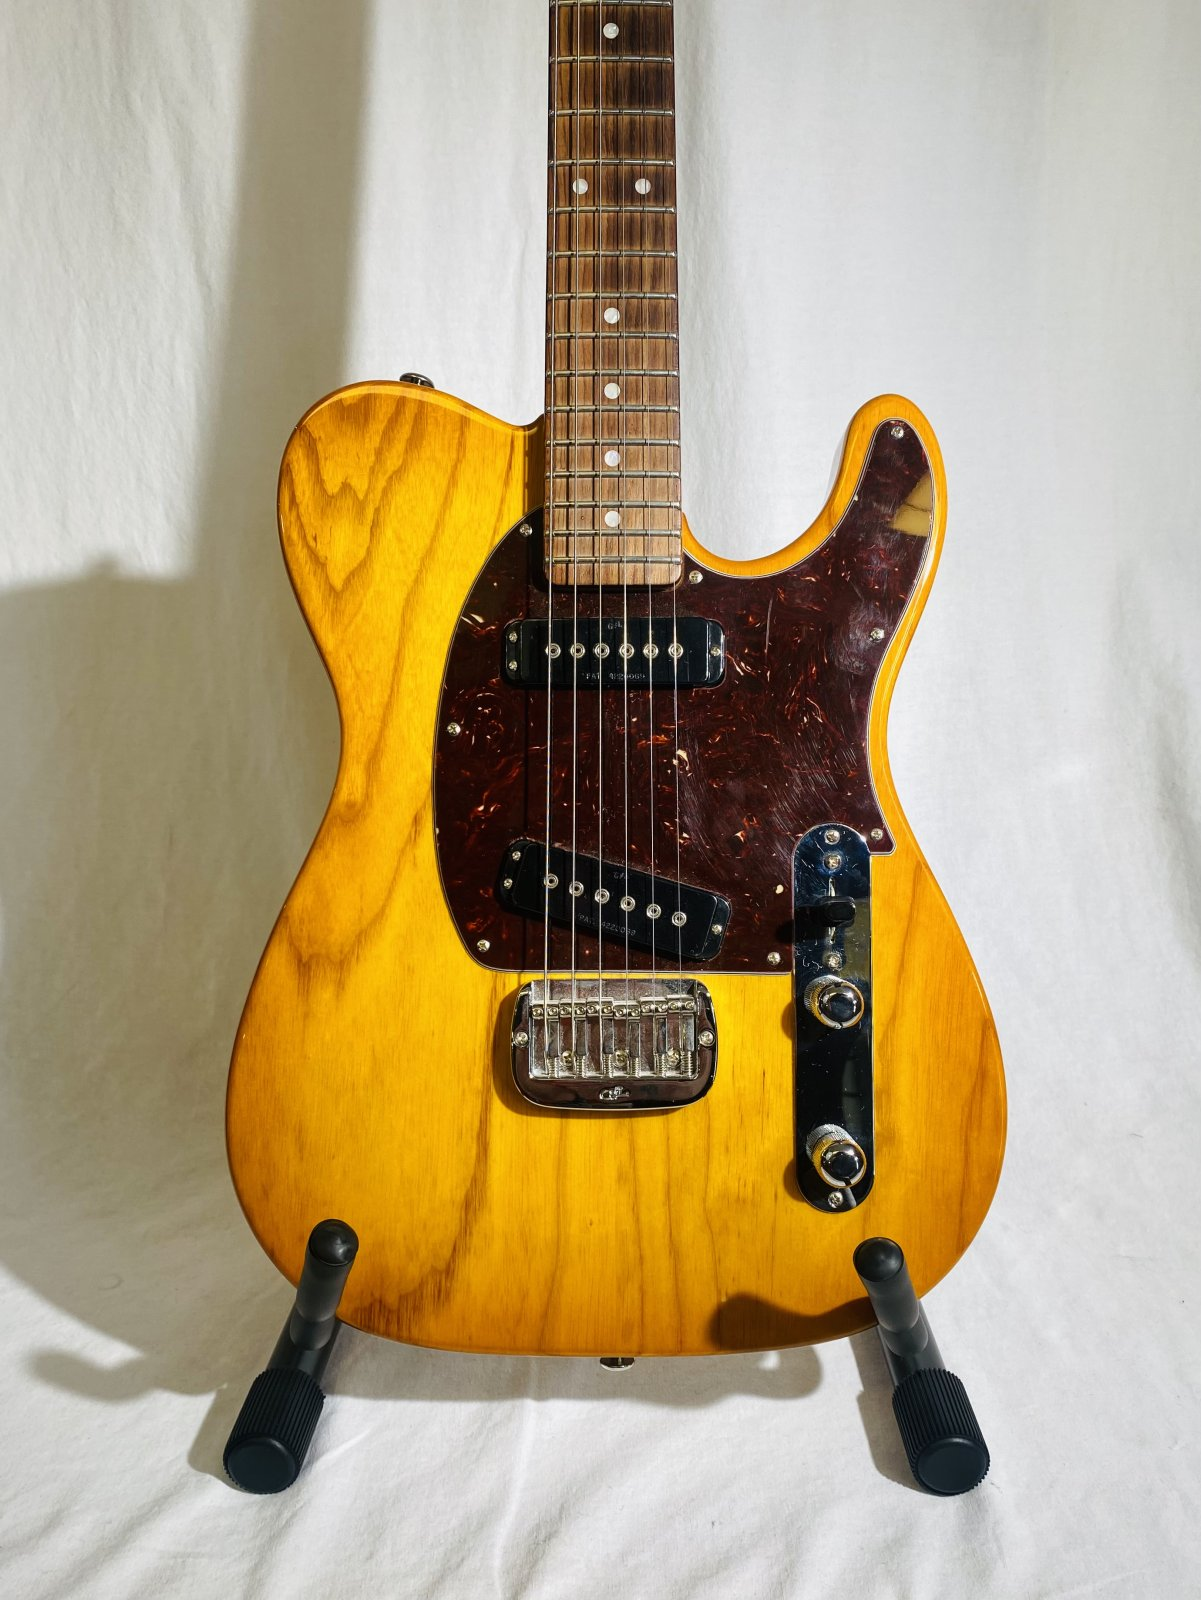 G&L ASAT ELECTRIC GUITAR WITH HARD CASE AND C.O.A.